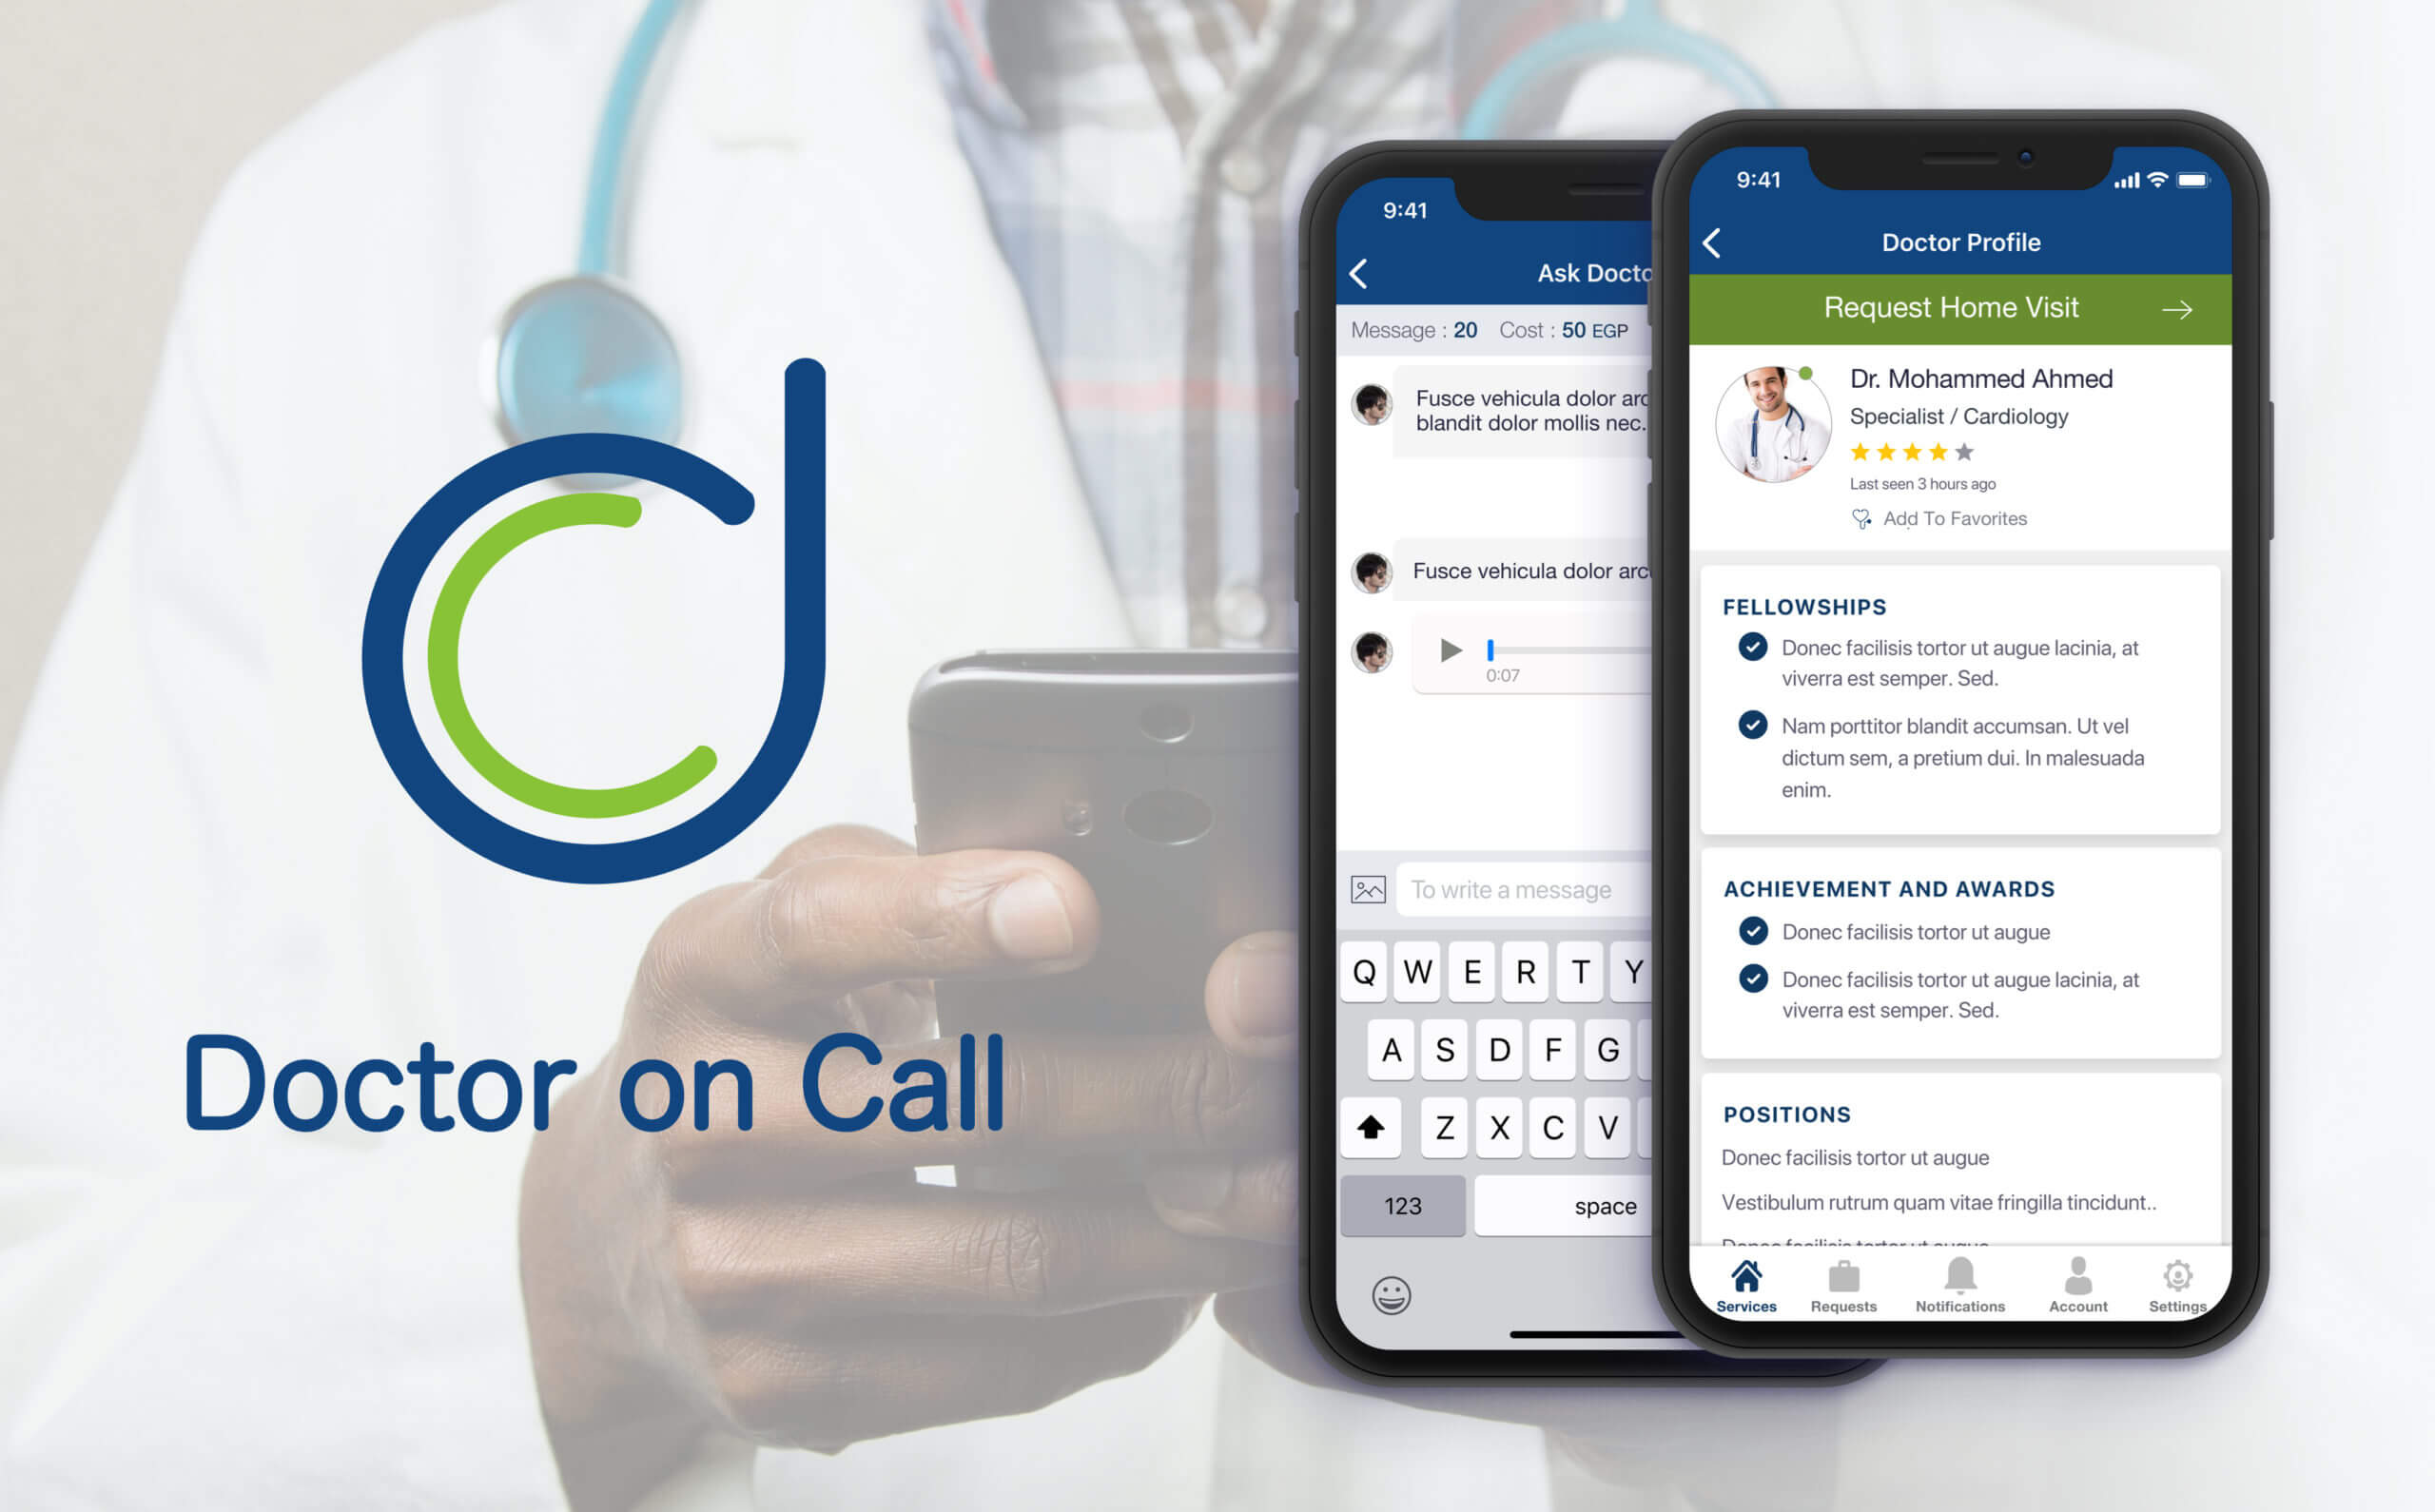 Doctor on Call featured image